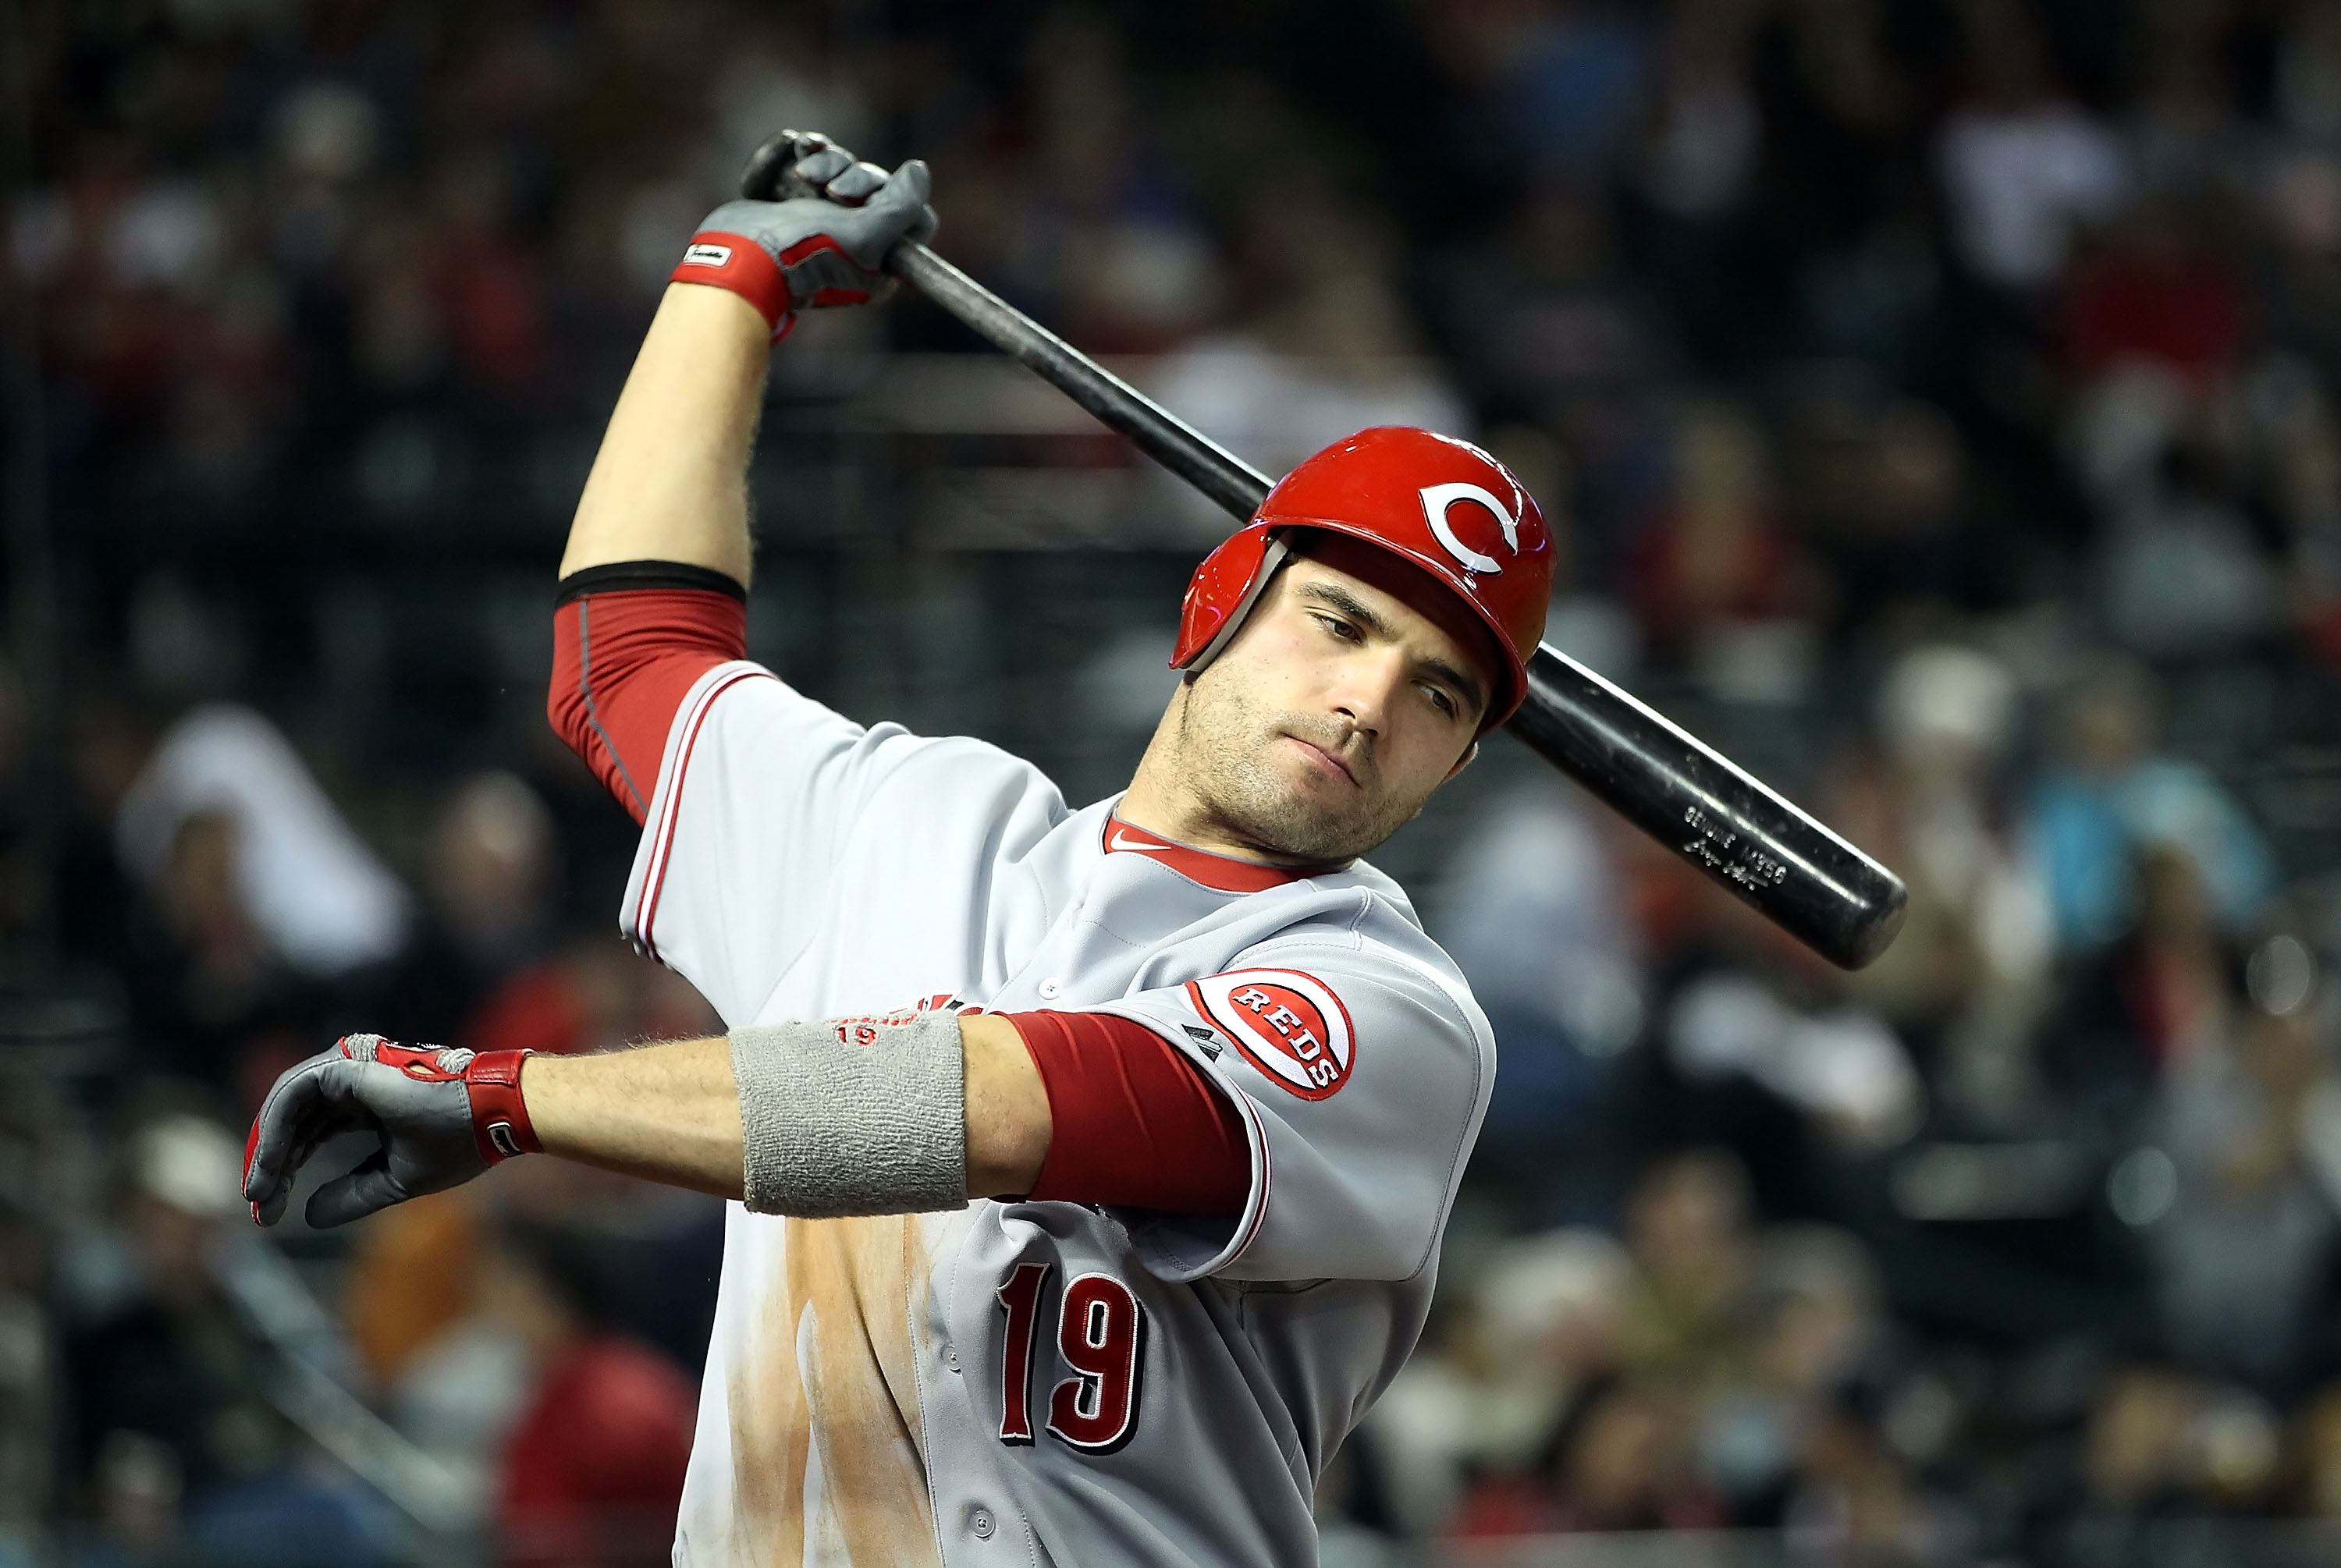 PHOENIX, AZ - APRIL 09:  Joey Votto #19 of the Cincinnati Reds warms up on deck during the Major League Baseball game against the Arizona Diamondbacks at Chase Field on April 9, 2011 in Phoenix, Arizona.  (Photo by Christian Petersen/Getty Images)